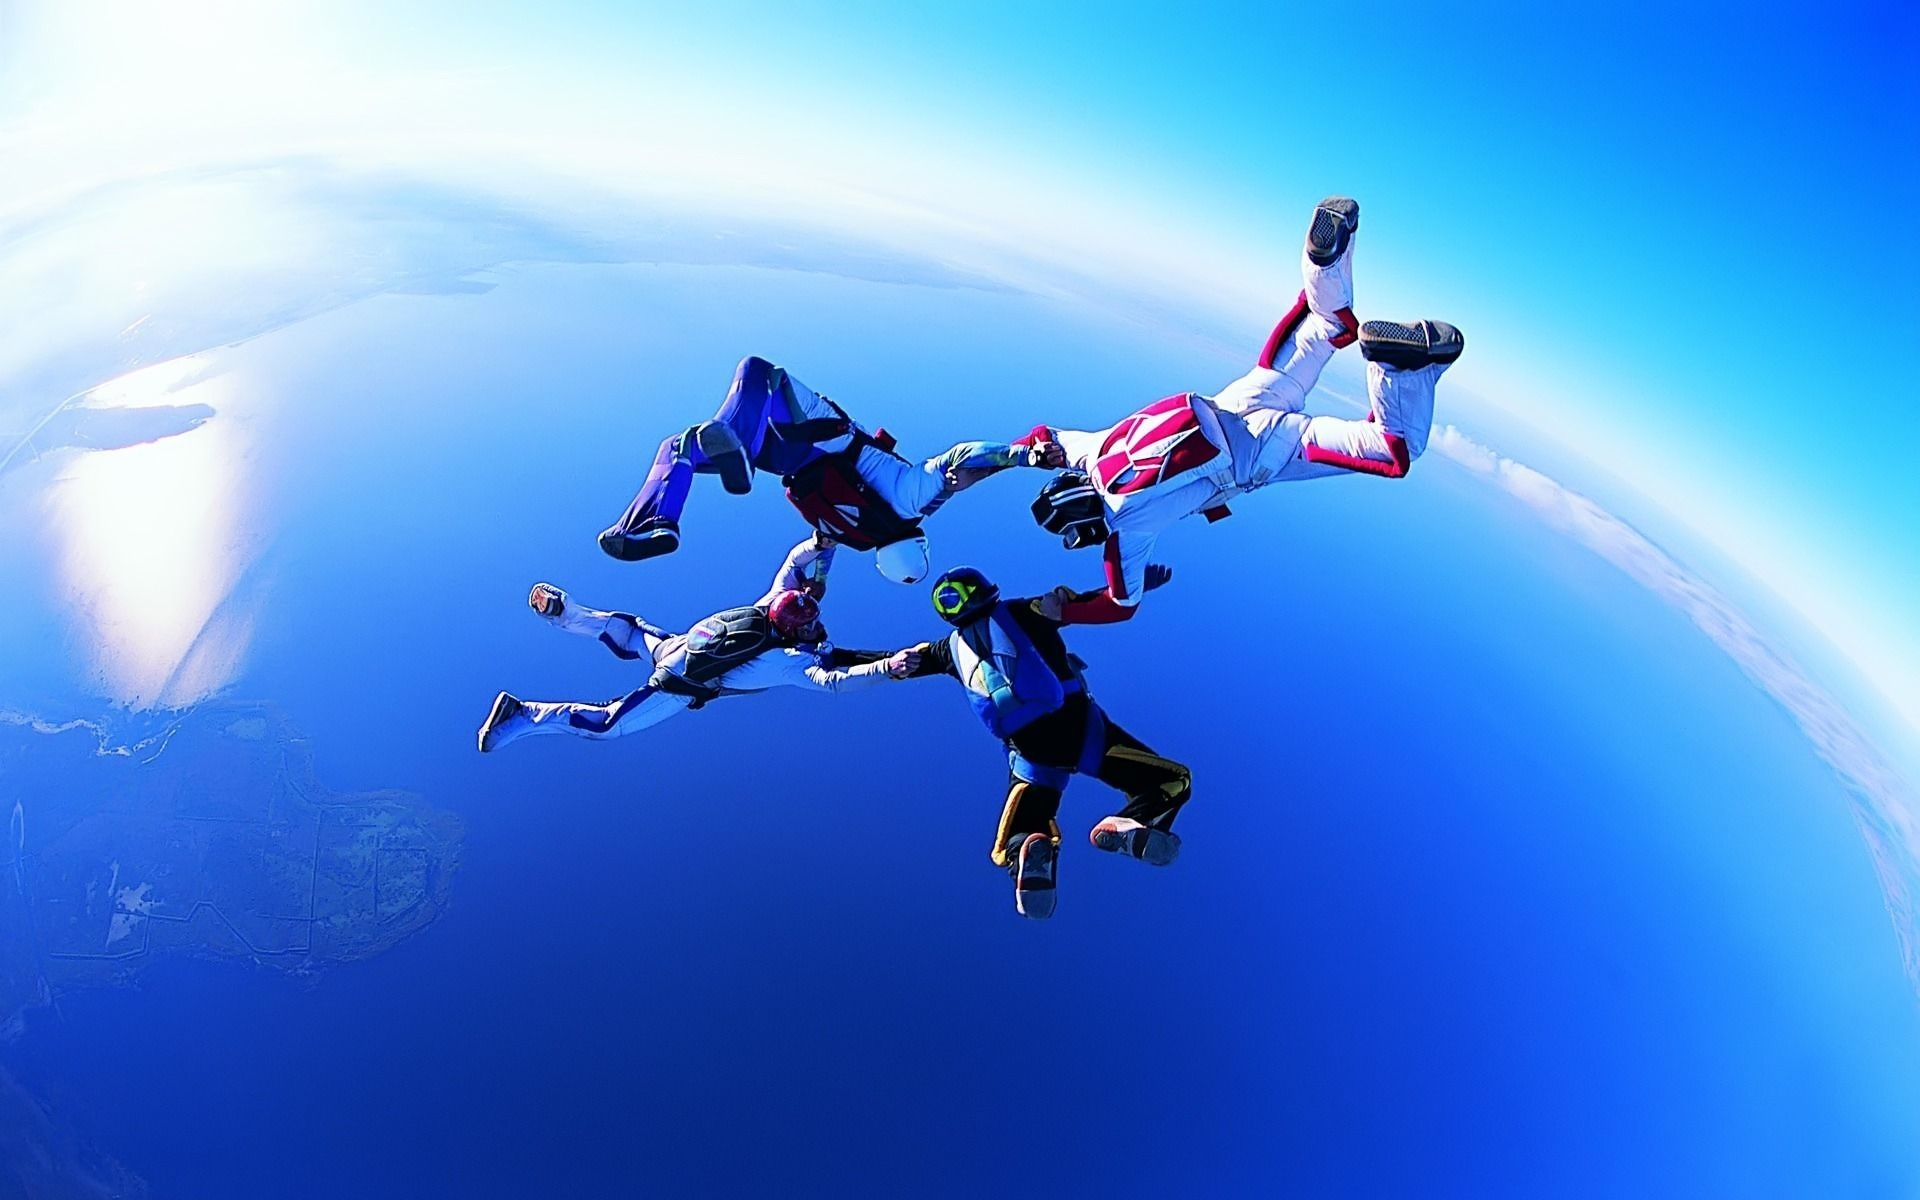 1920x1200 - Skydiving Wallpapers 19